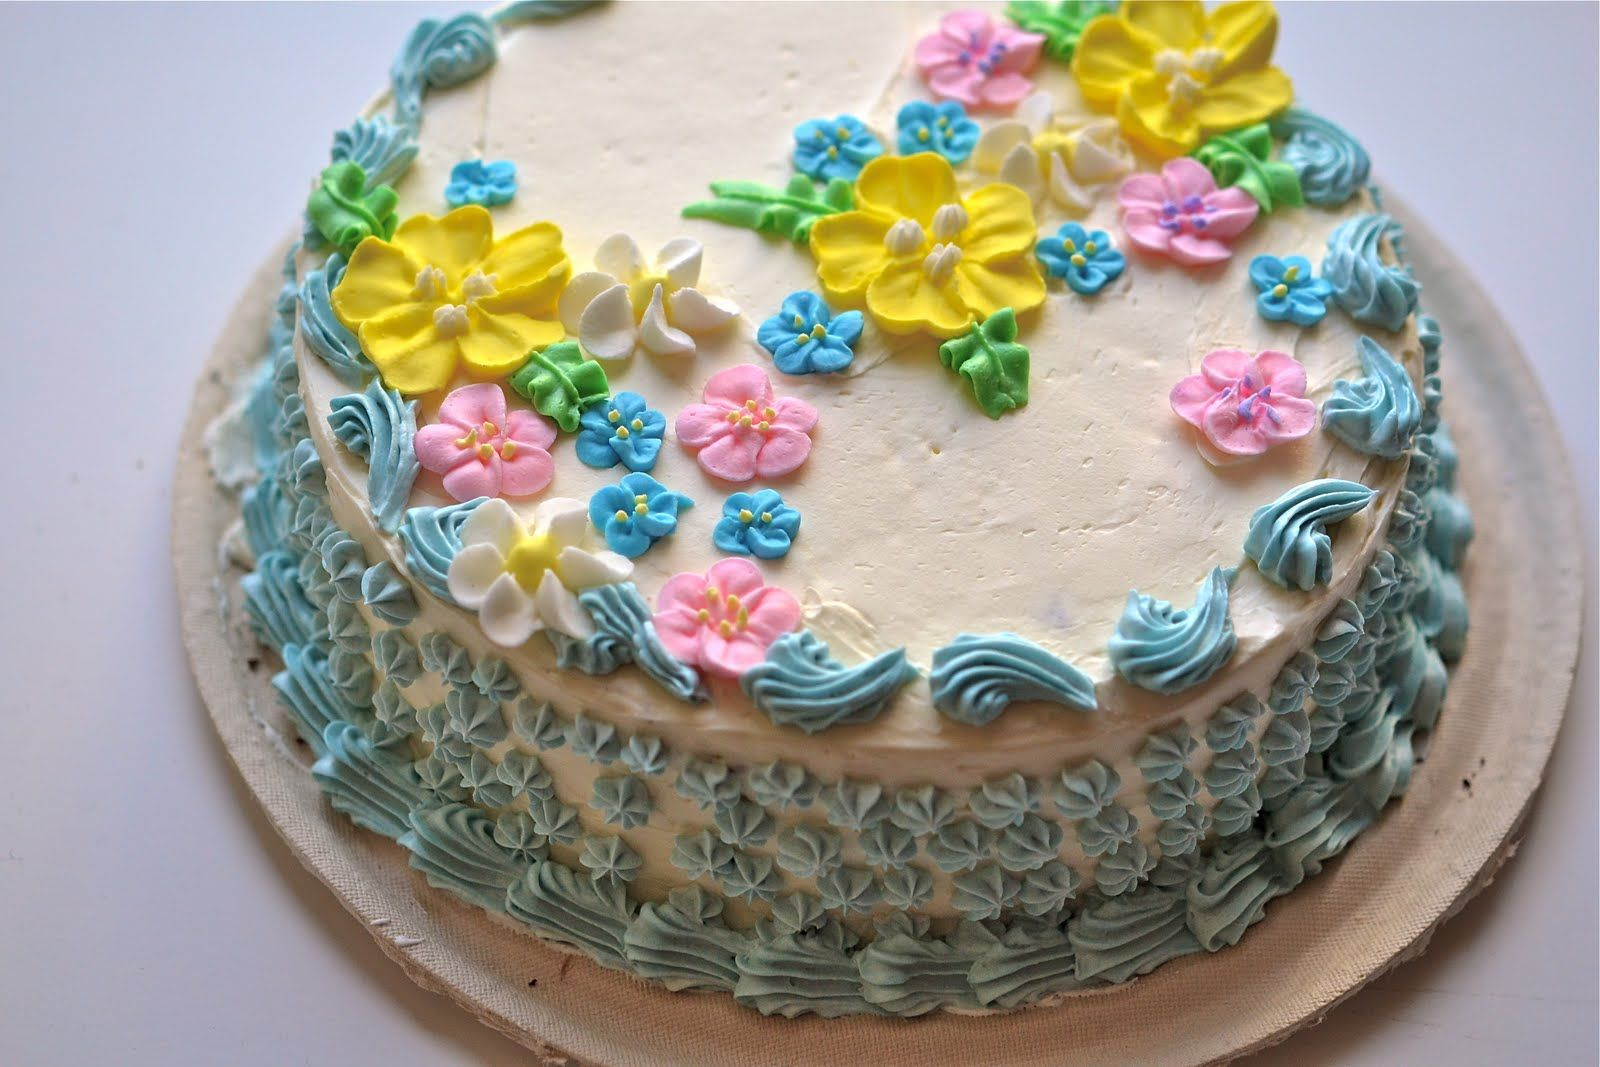 Butter Icing Cake Decorating Ideas : Decorated Cakes on Pinterest 168 Pins